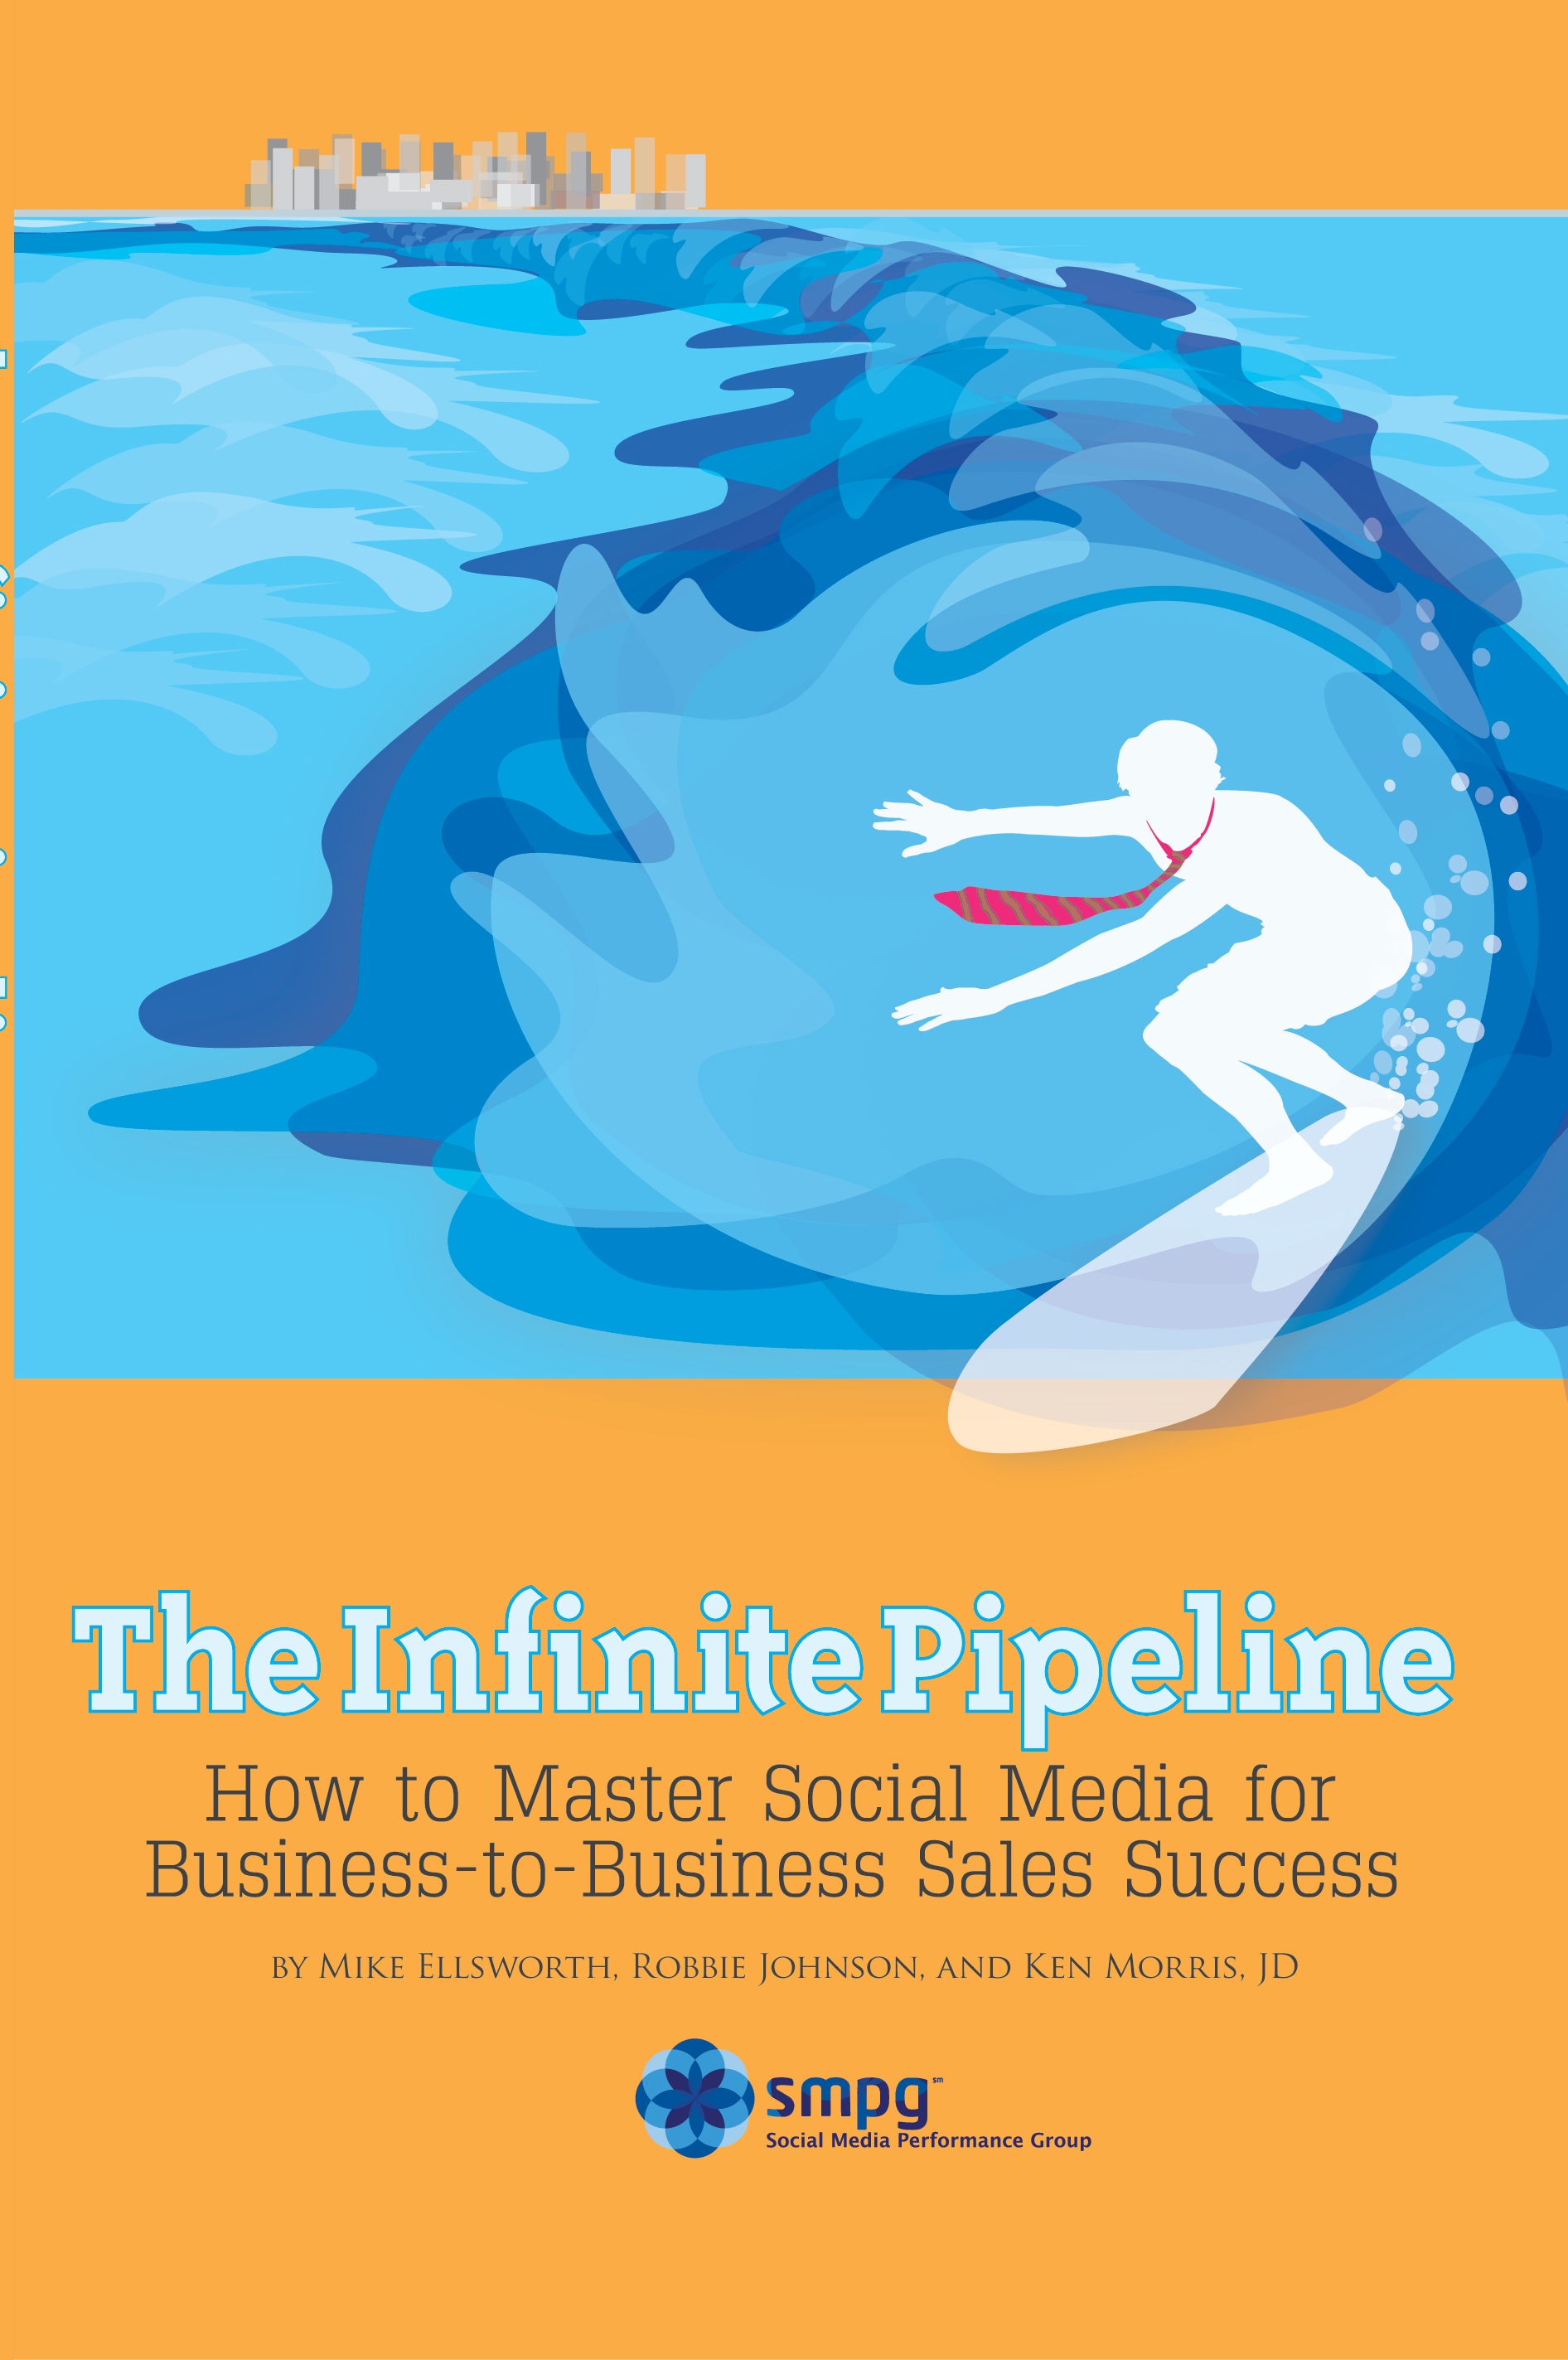 Infinite Pipeline Sales Person Edition – original version – free to read